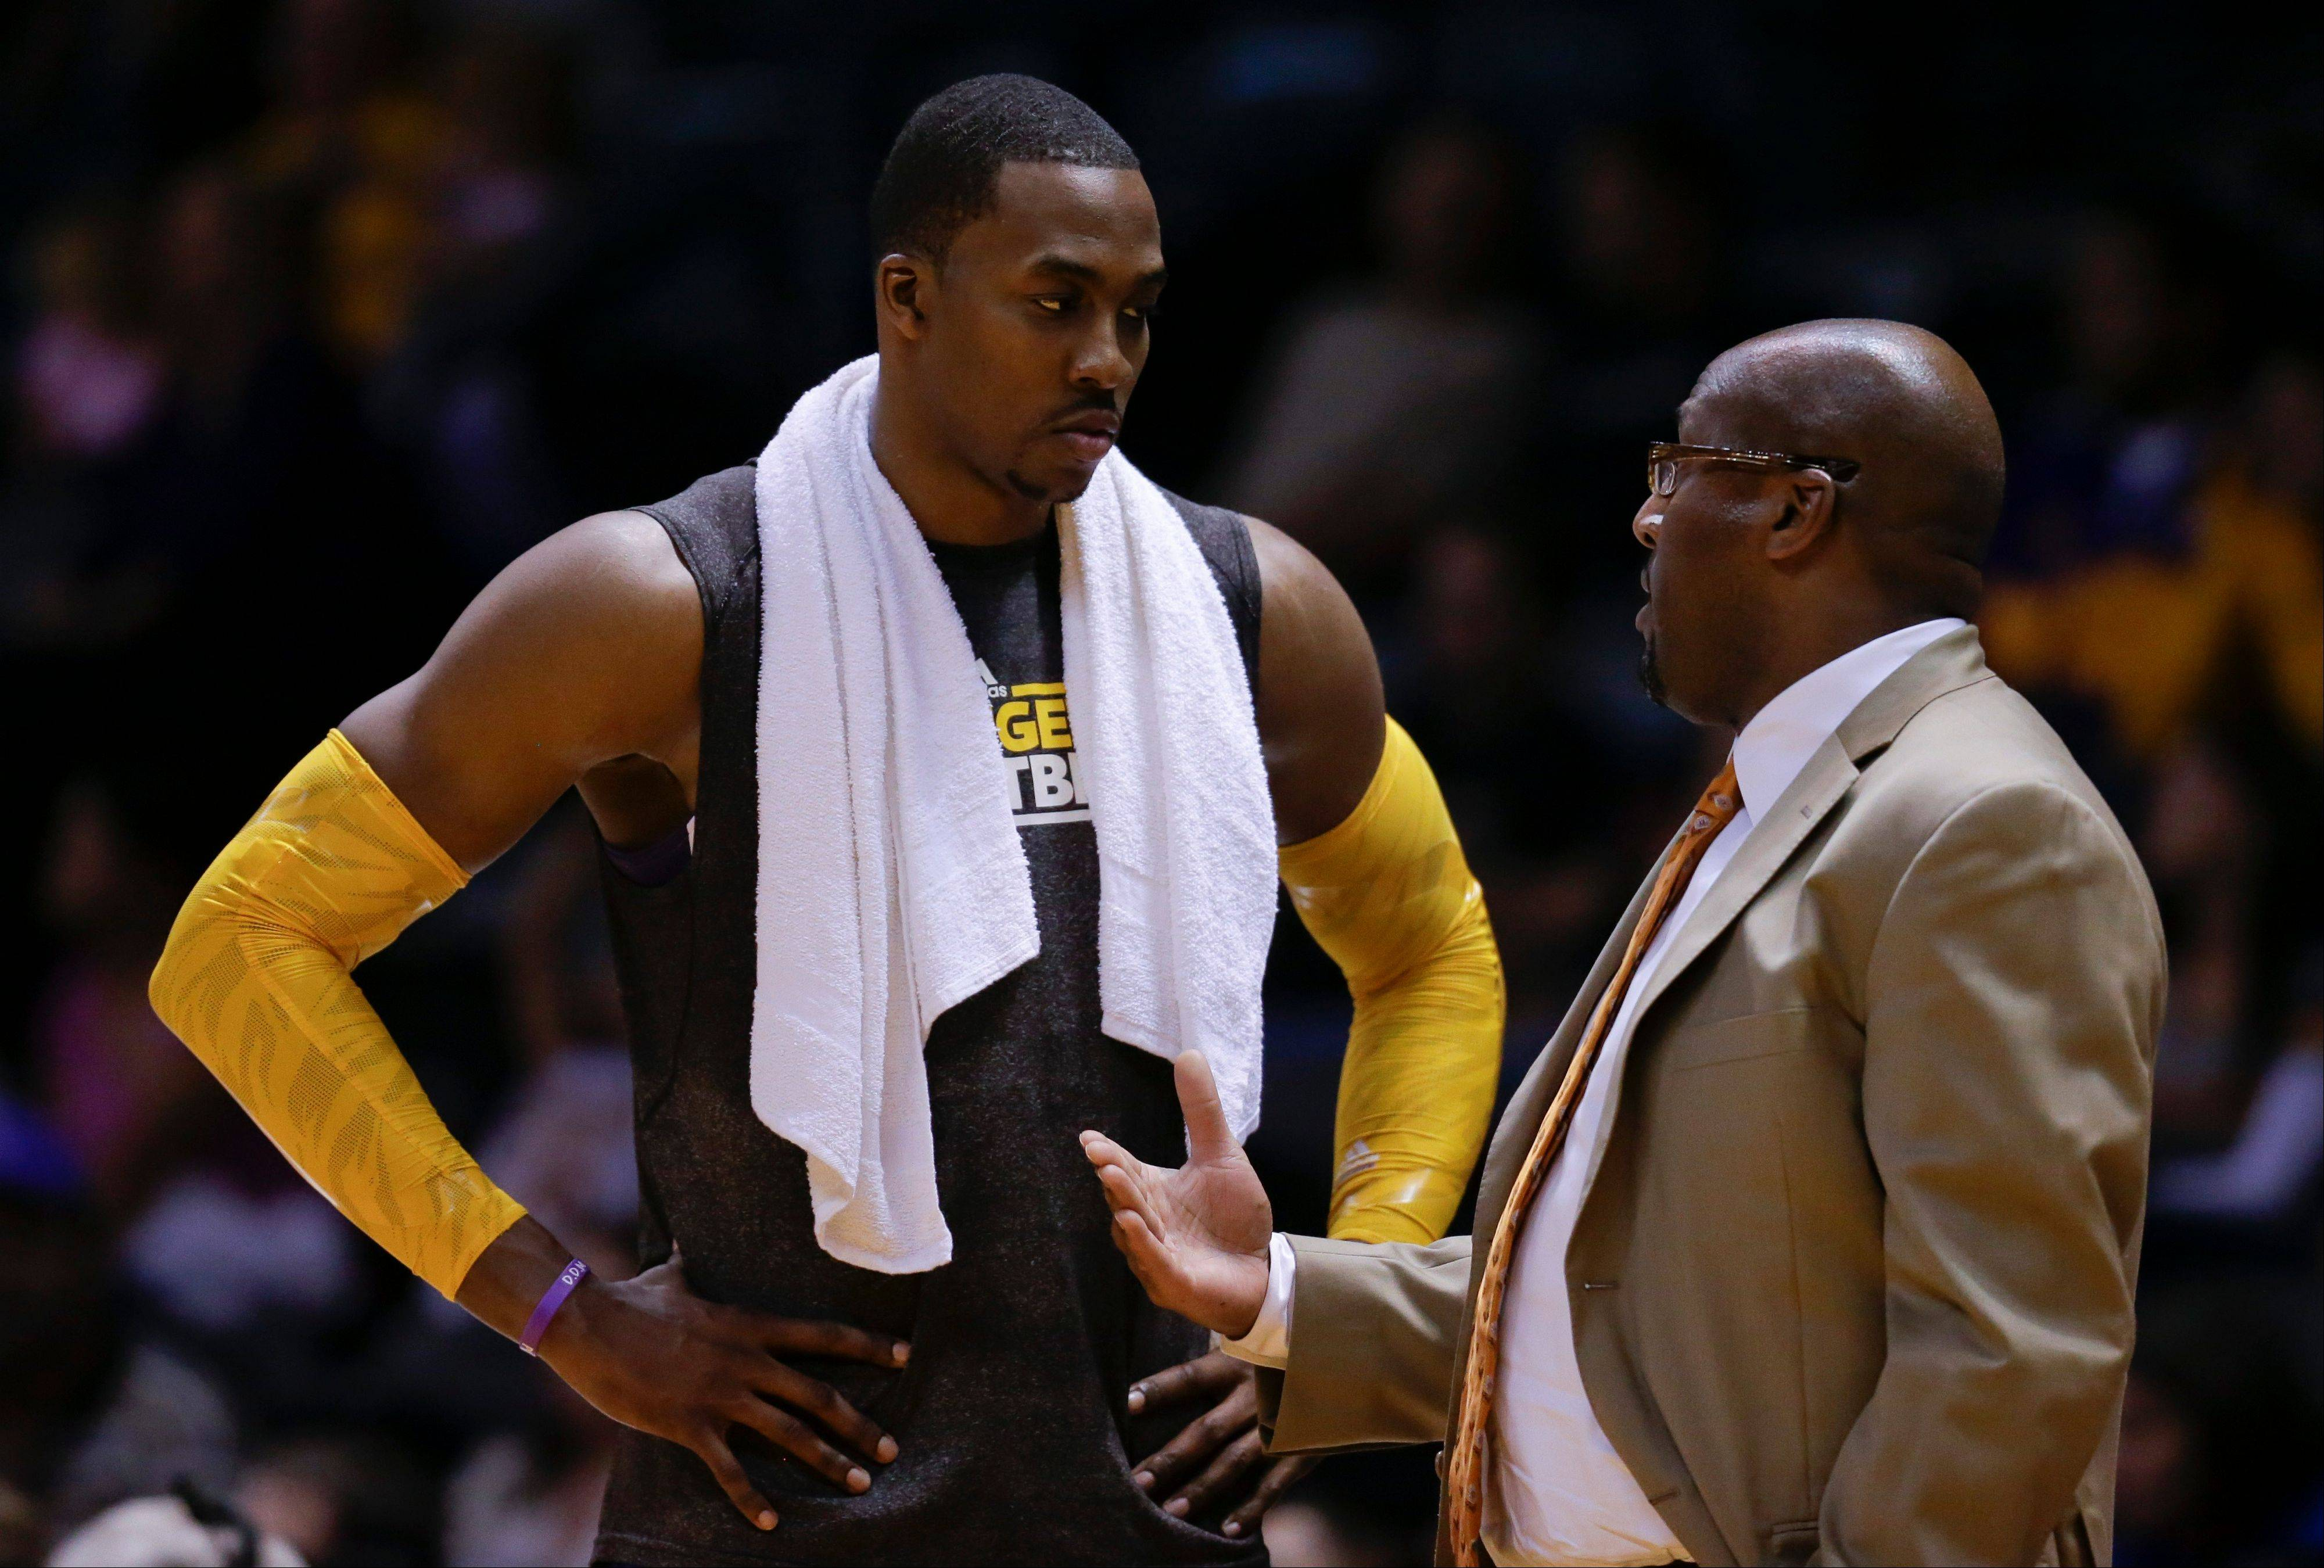 Los Angeles Lakers center Dwight Howard, left, and head coach Mike Brown will be under an intense media spotlight as the aging Lakers try to rebuild with Howard.